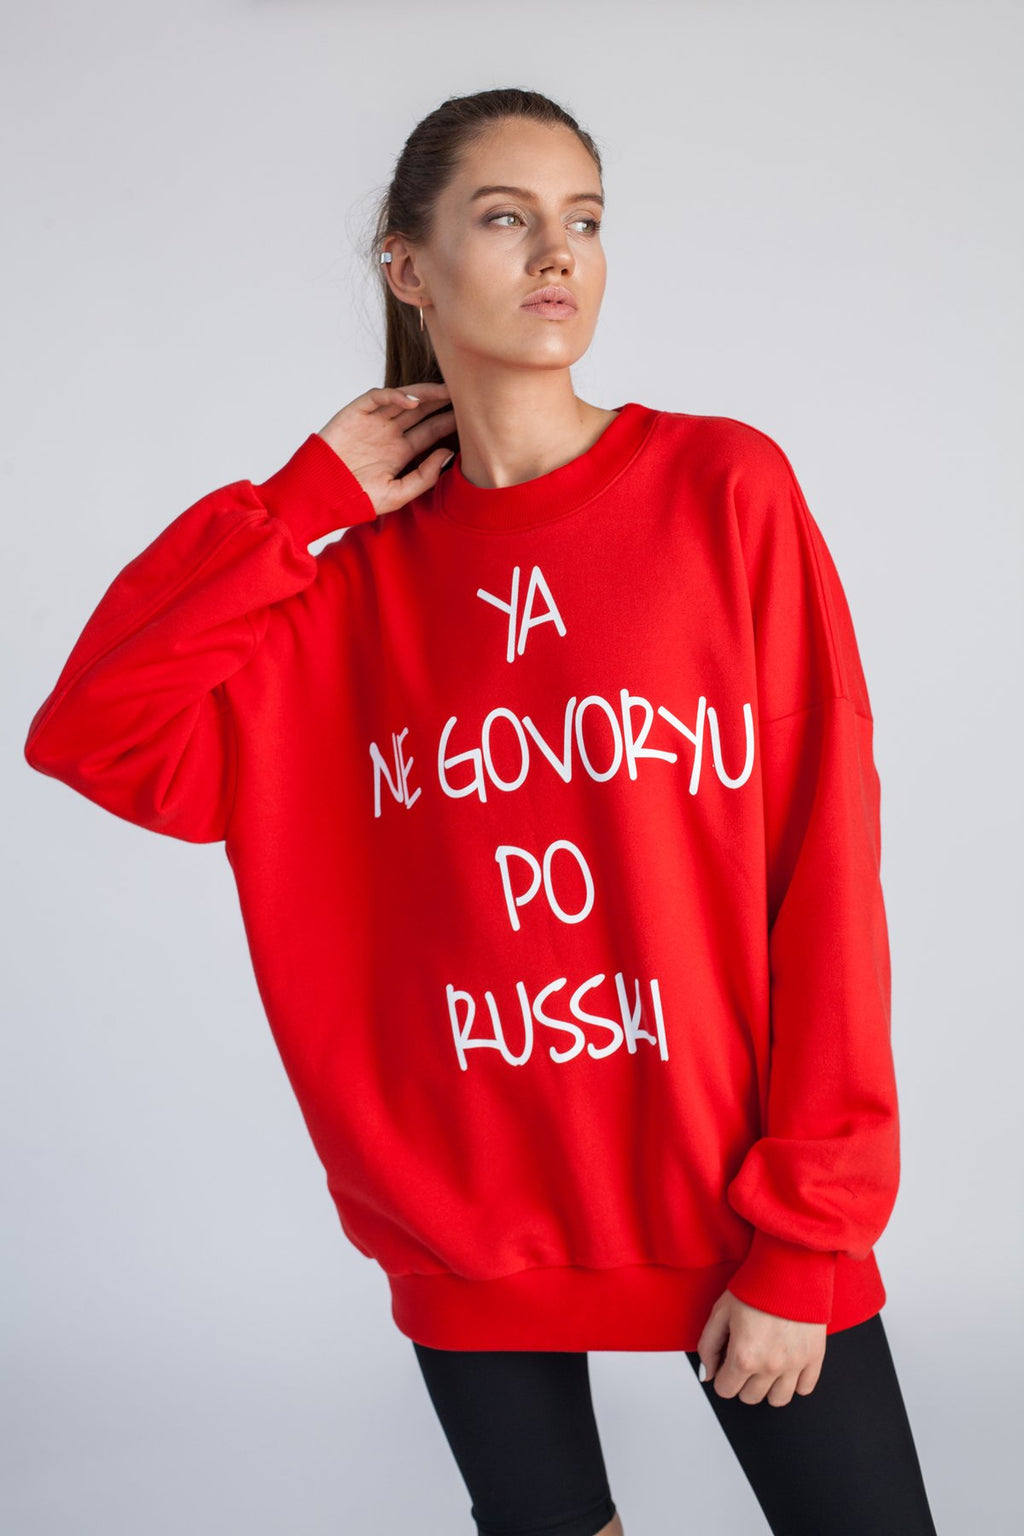 le slap red sweatshirt oversized russki ironic wording unisex madress